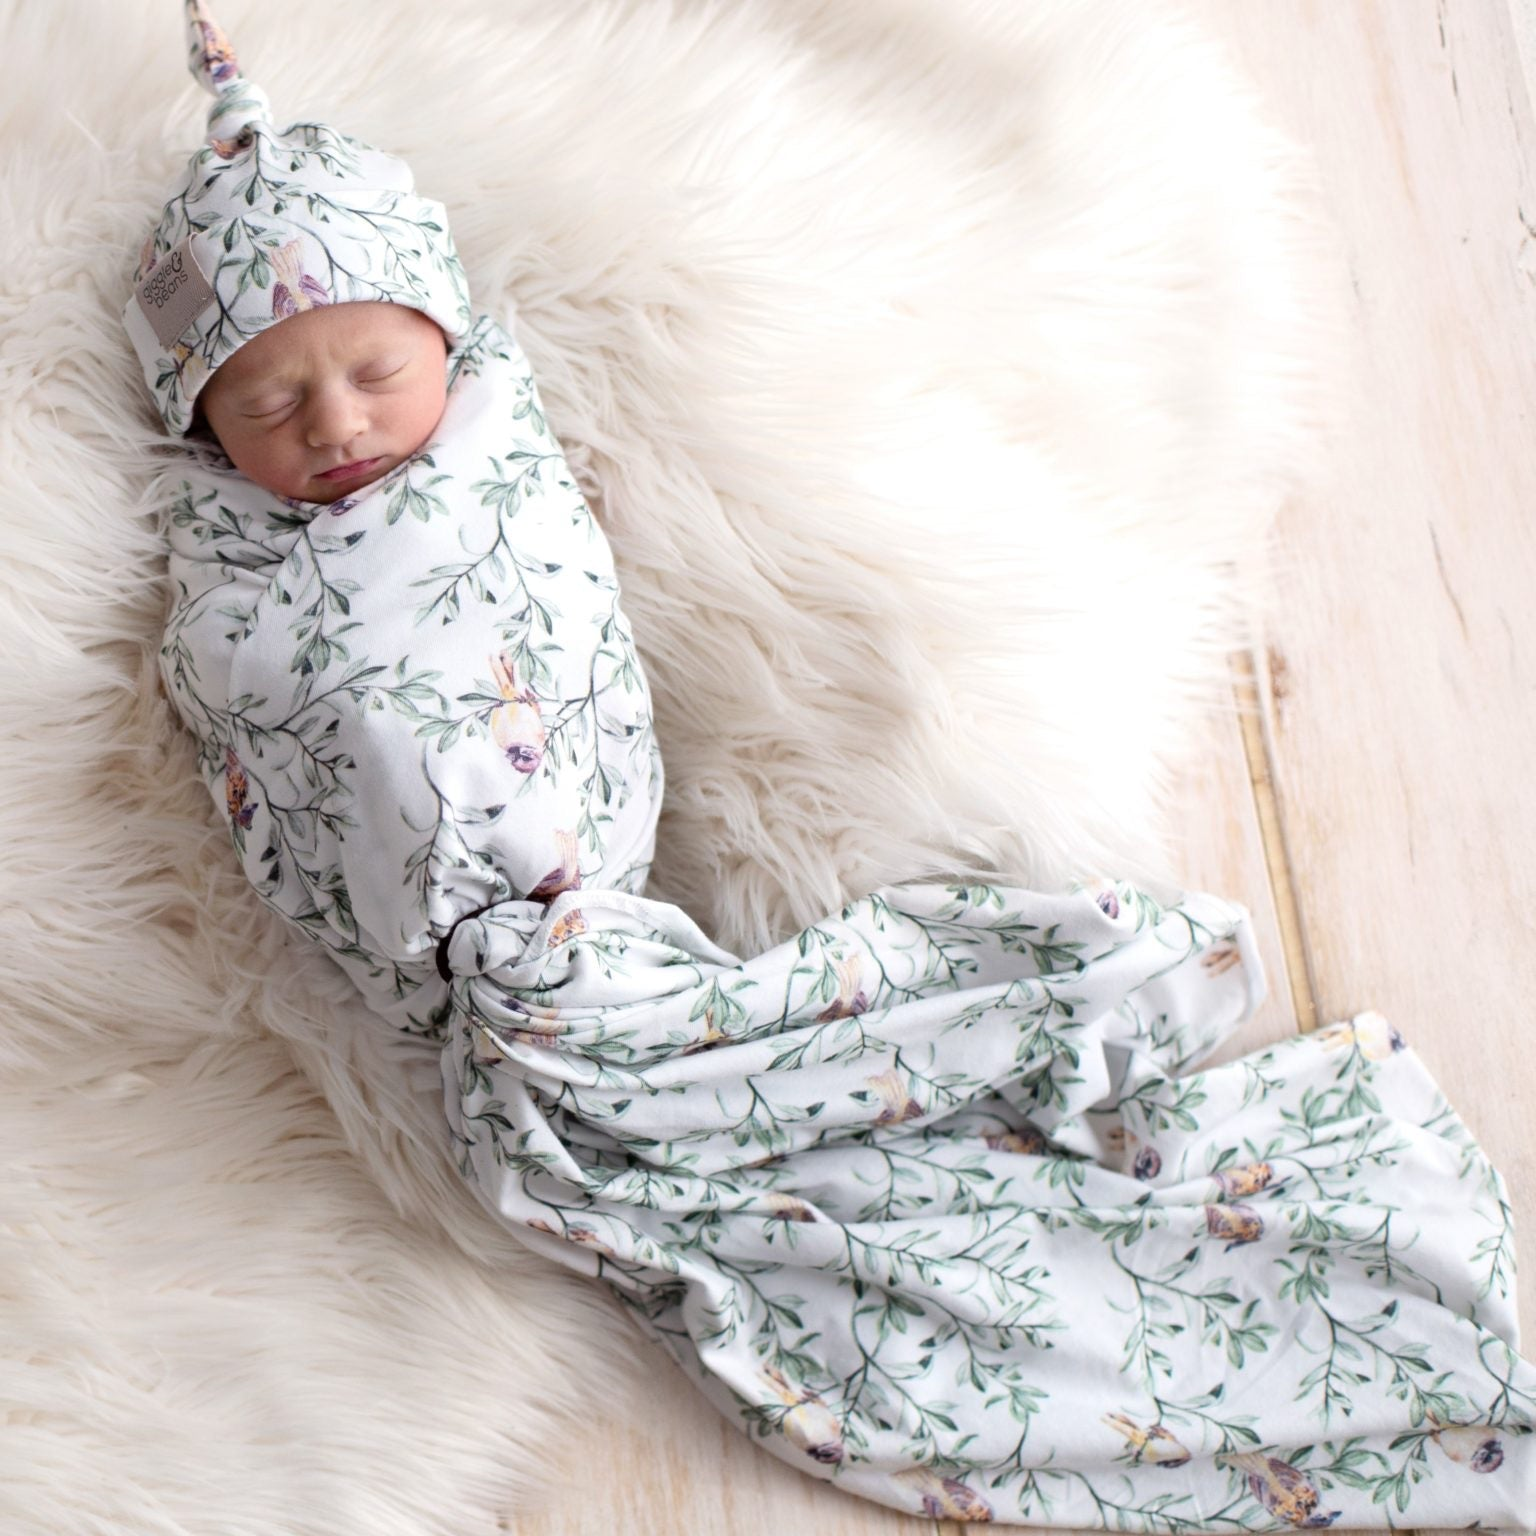 Spread Your Wings' Sparrow Swaddle Blanket & Newborn Top Knot Beanie Set